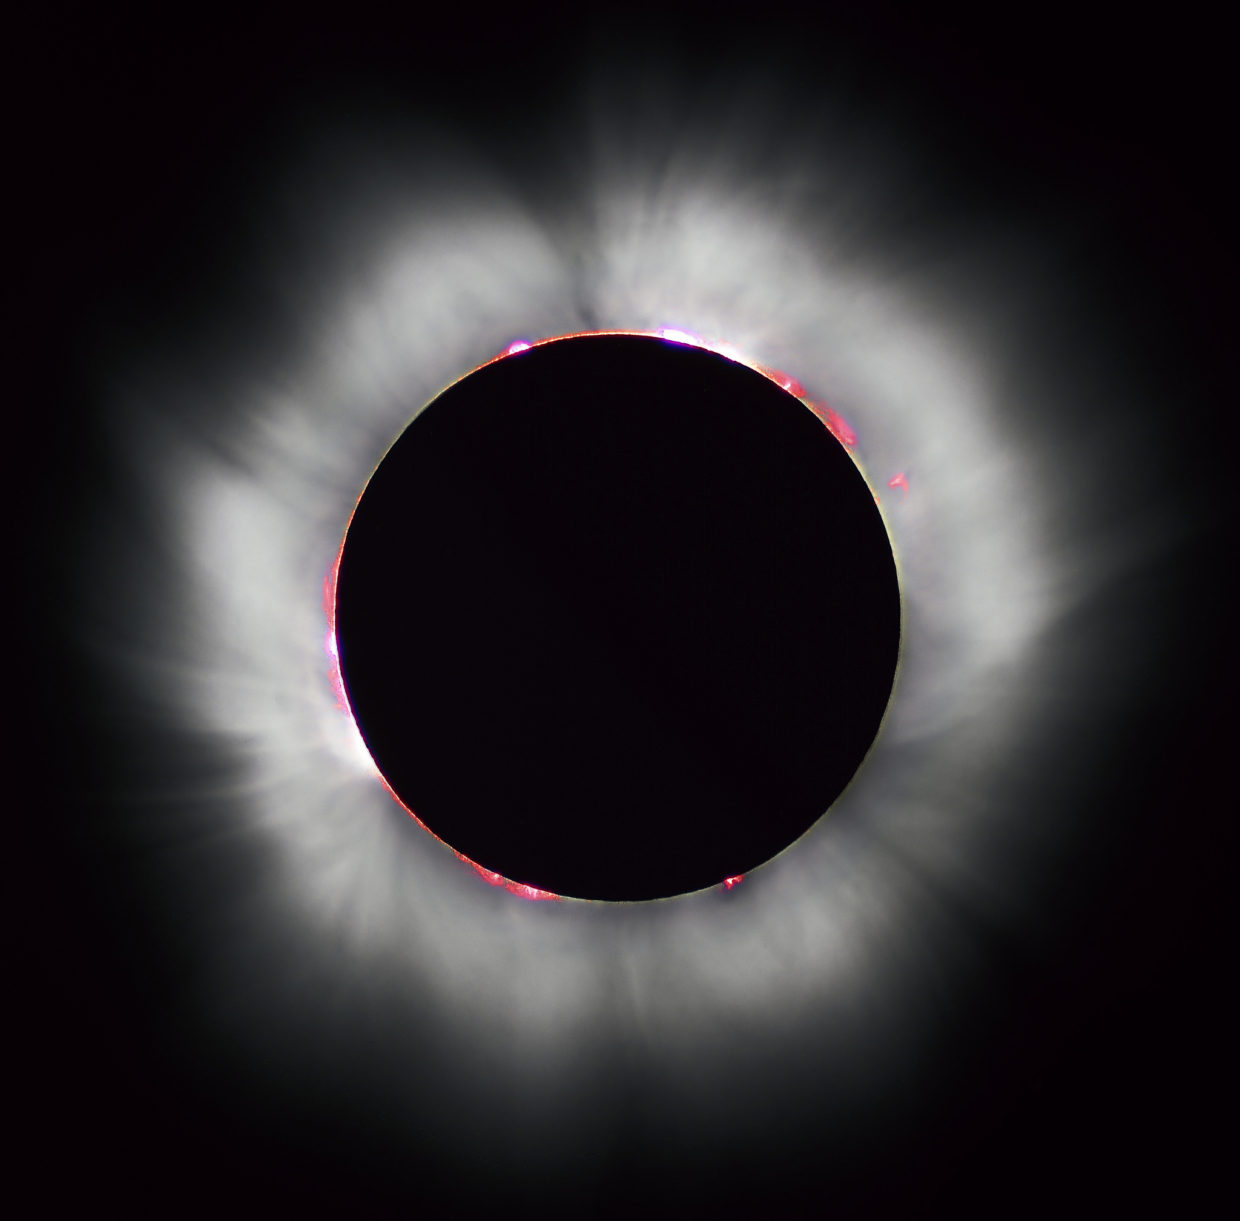 Eclipse watch: How will plants and critters respond?